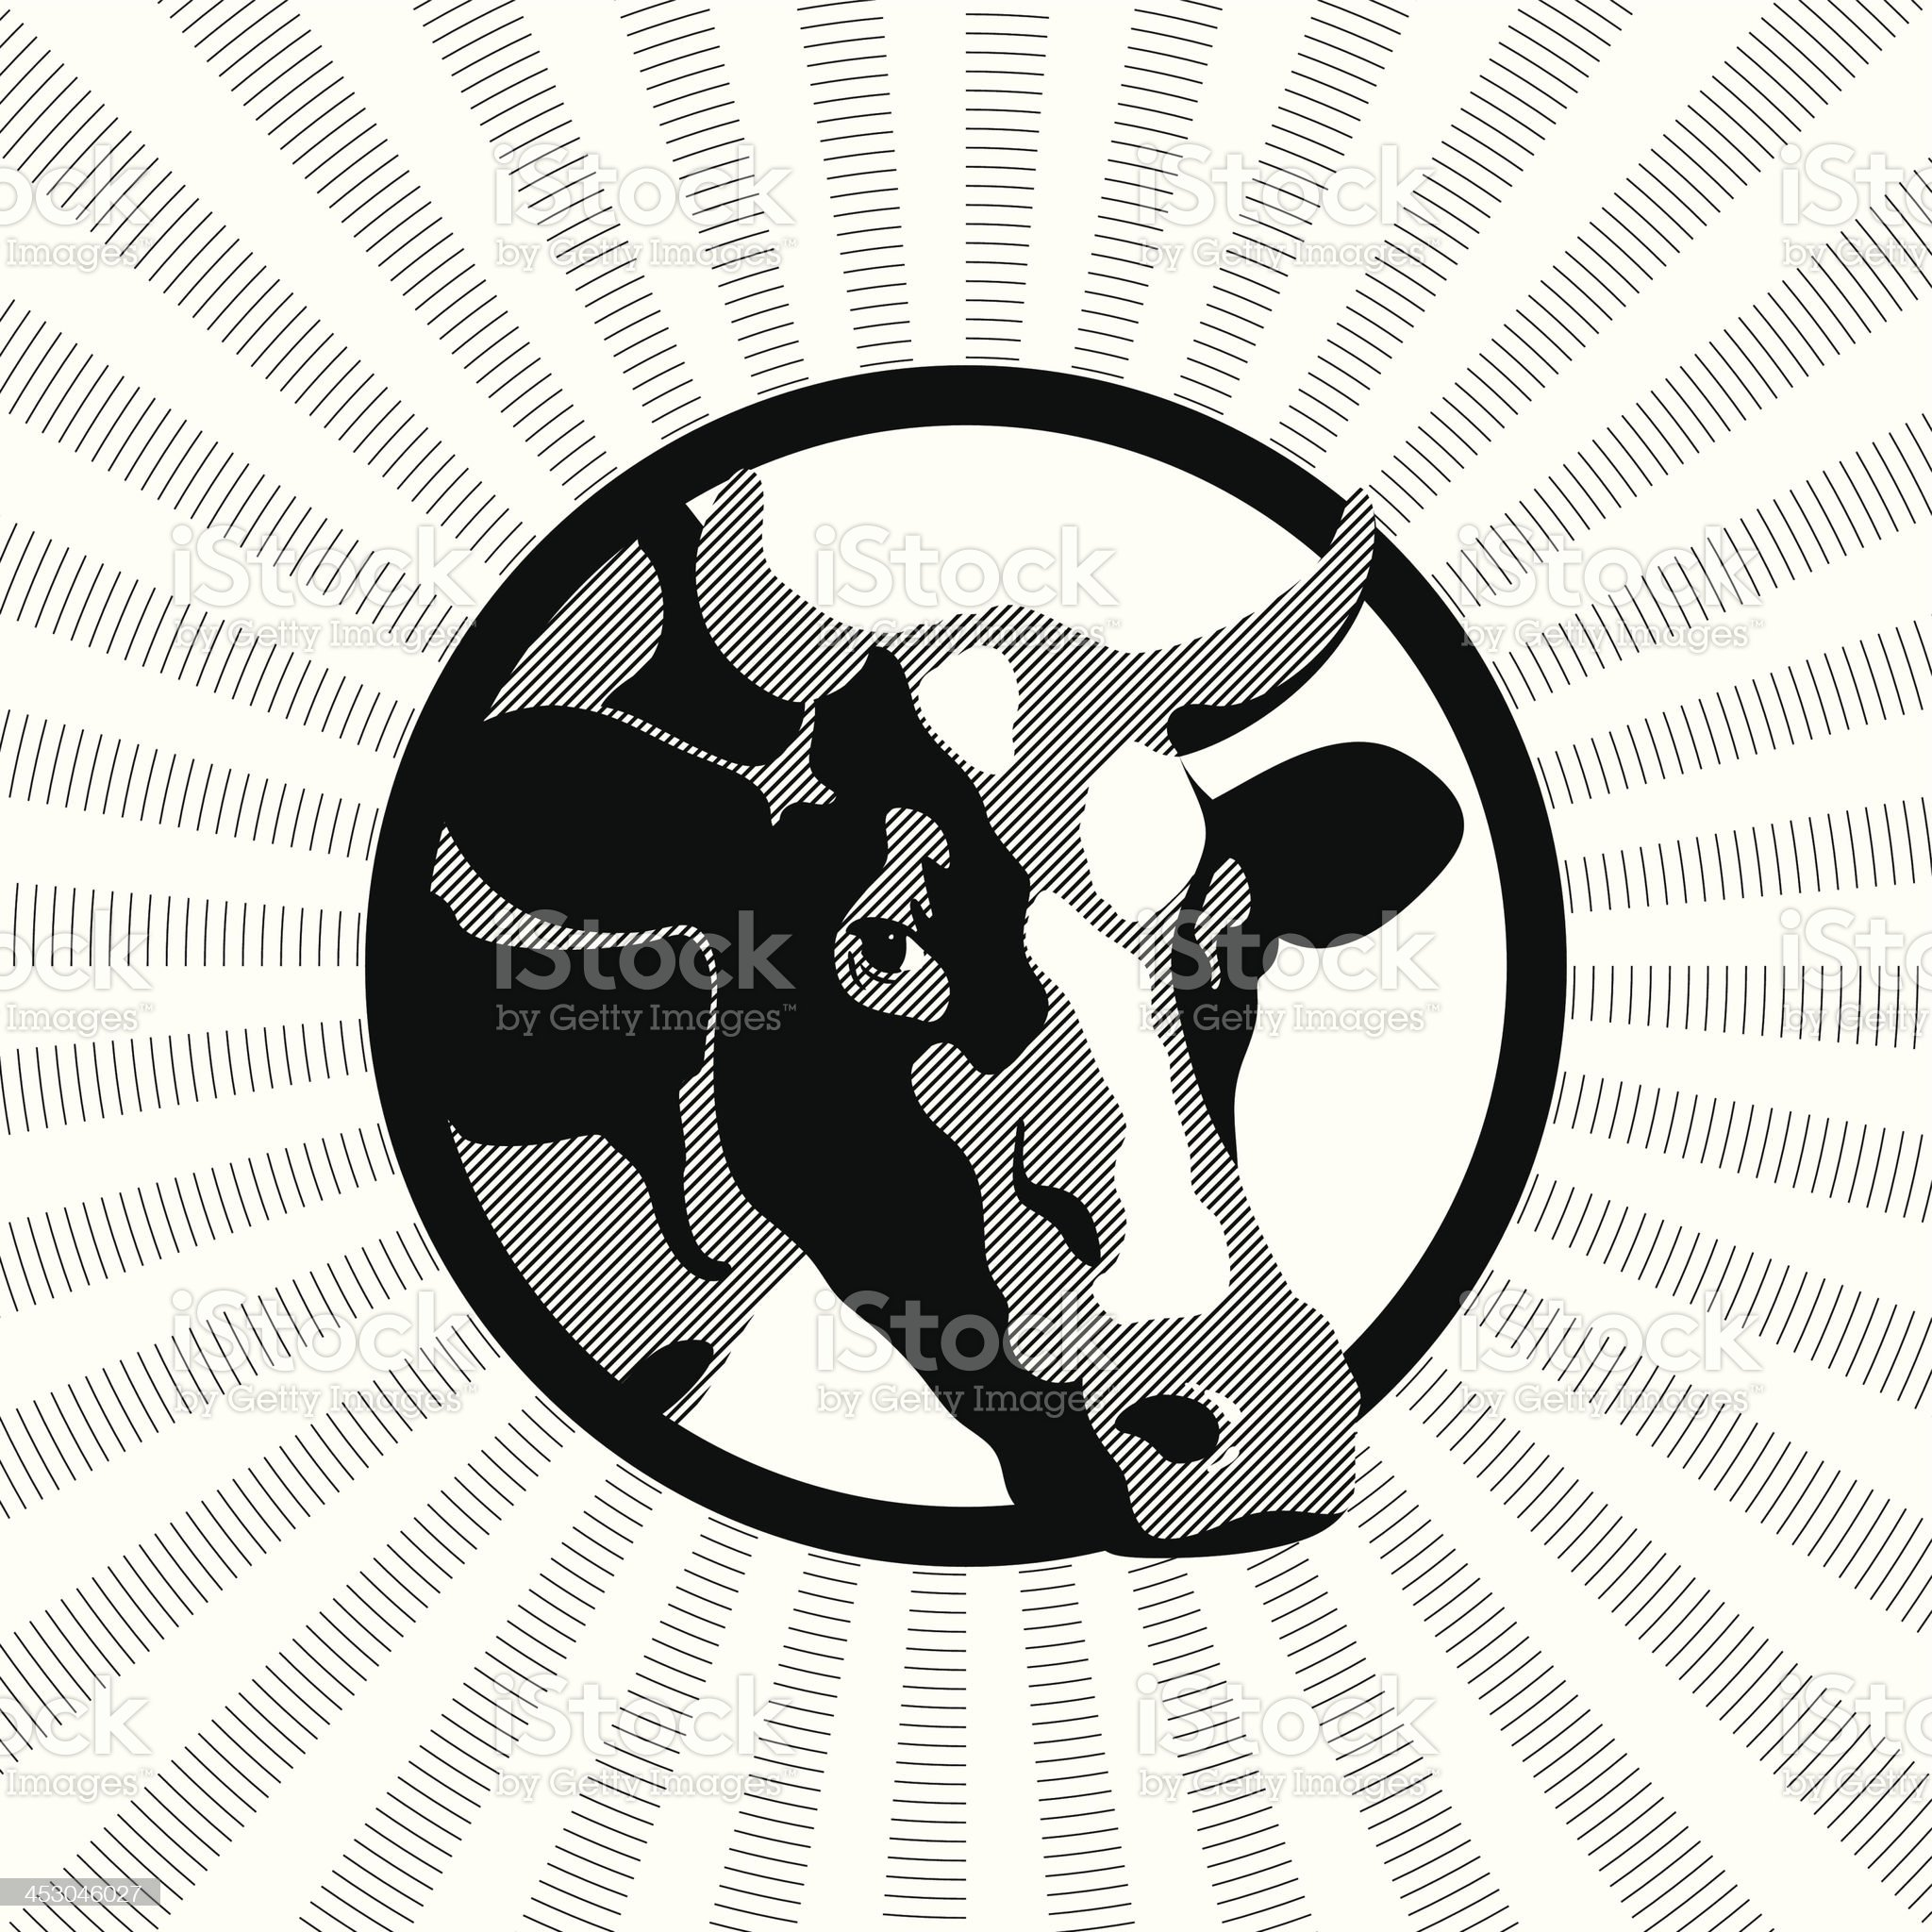 Label cow black-and-white royalty-free stock vector art